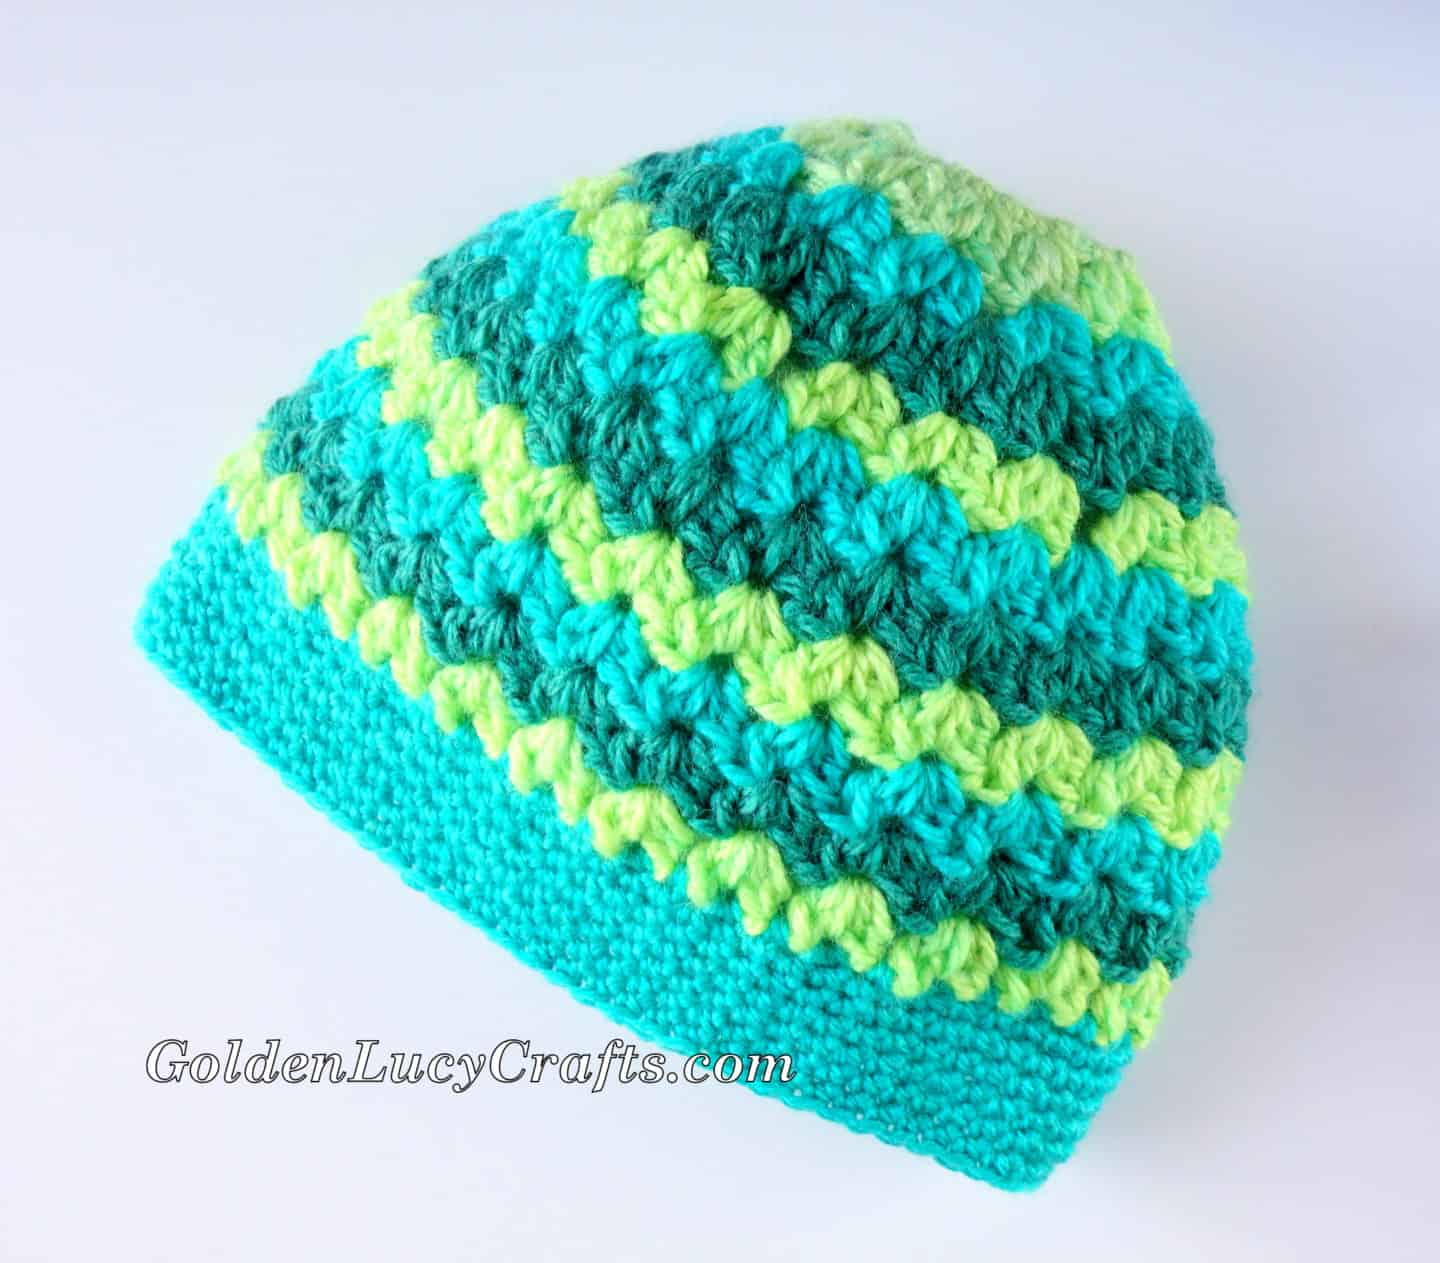 Messy Bun Hat Made with Caron Cakes Yarn